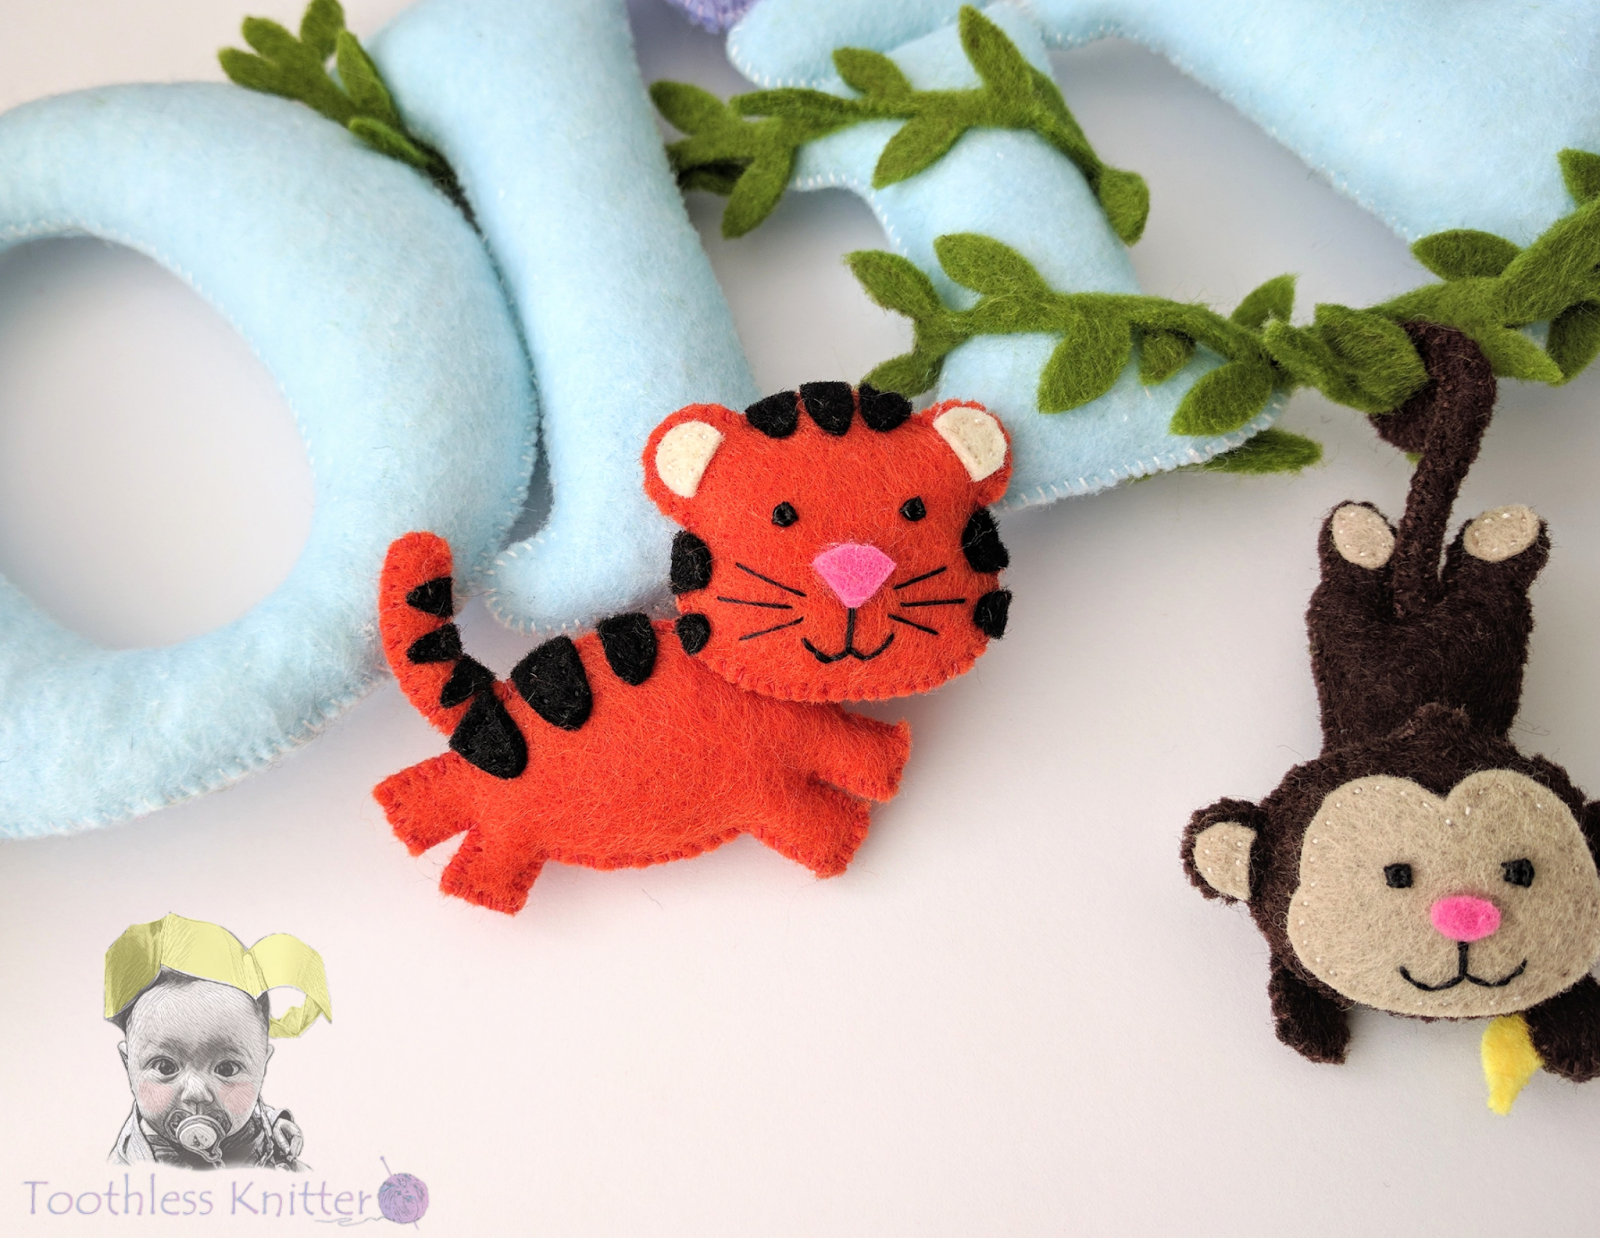 Filcowy Baner Imienny - Tygrys / Felt Baby Name Banner - Tiger ...